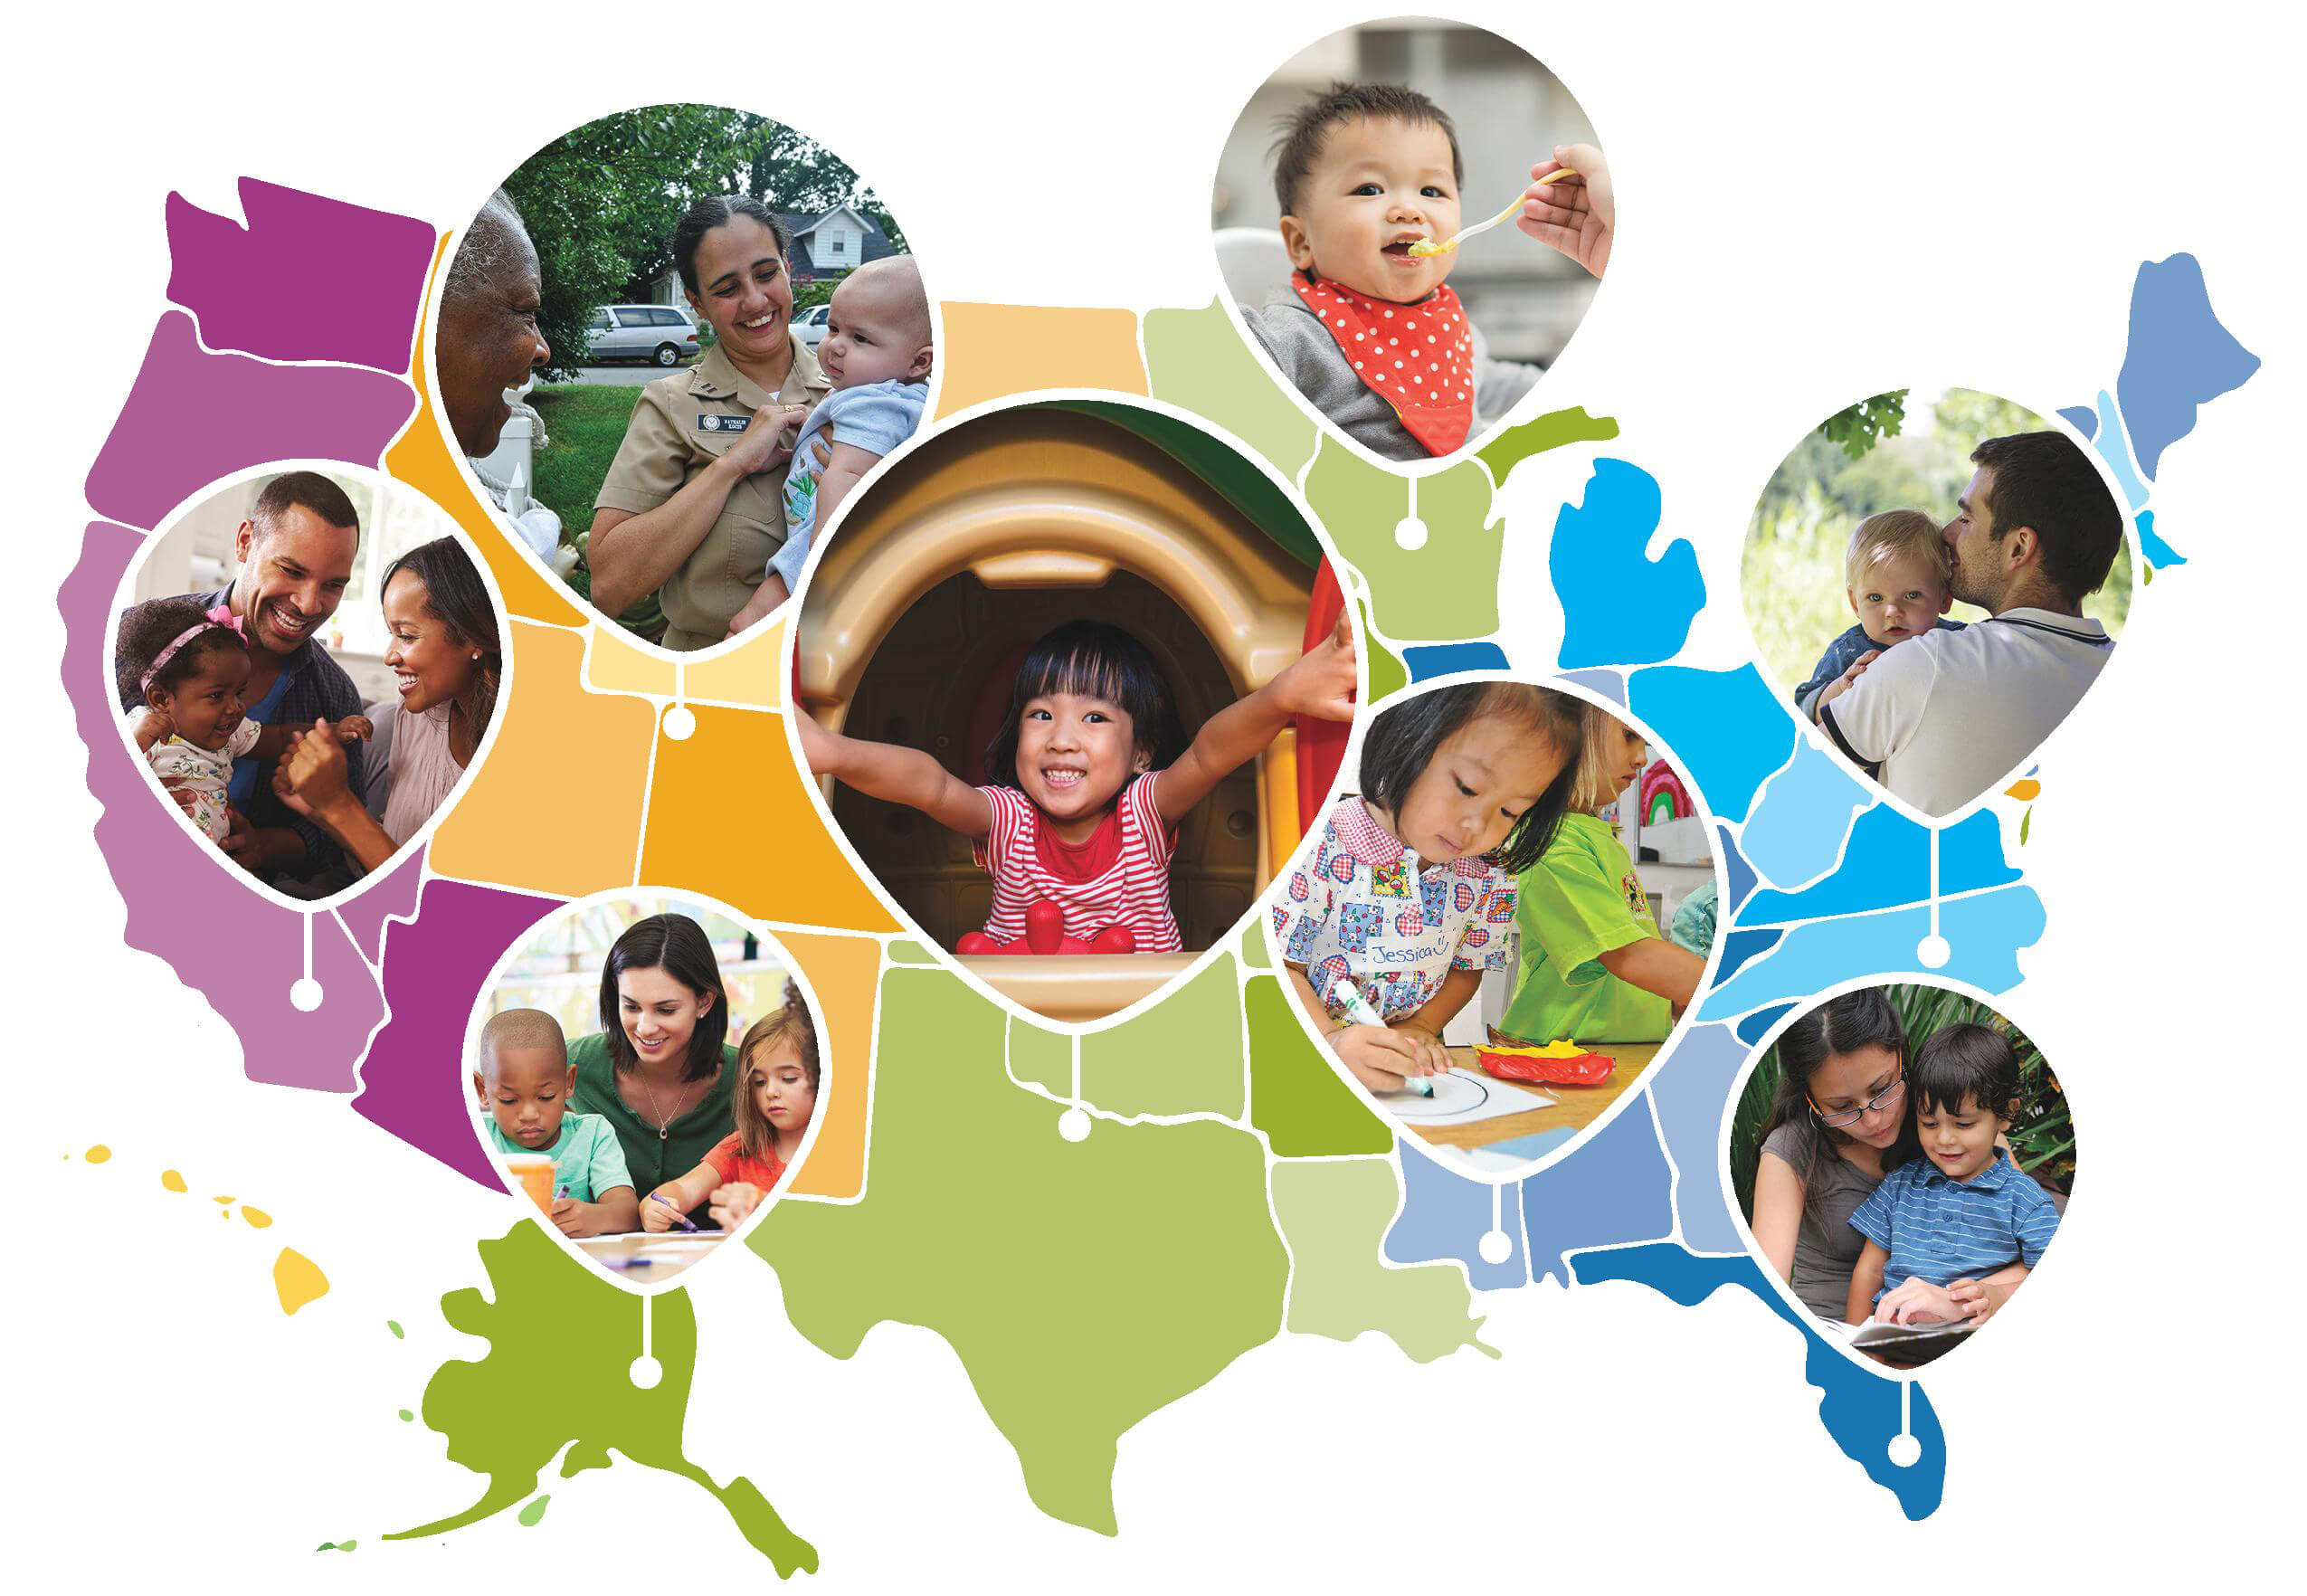 Childcare Industry Overview